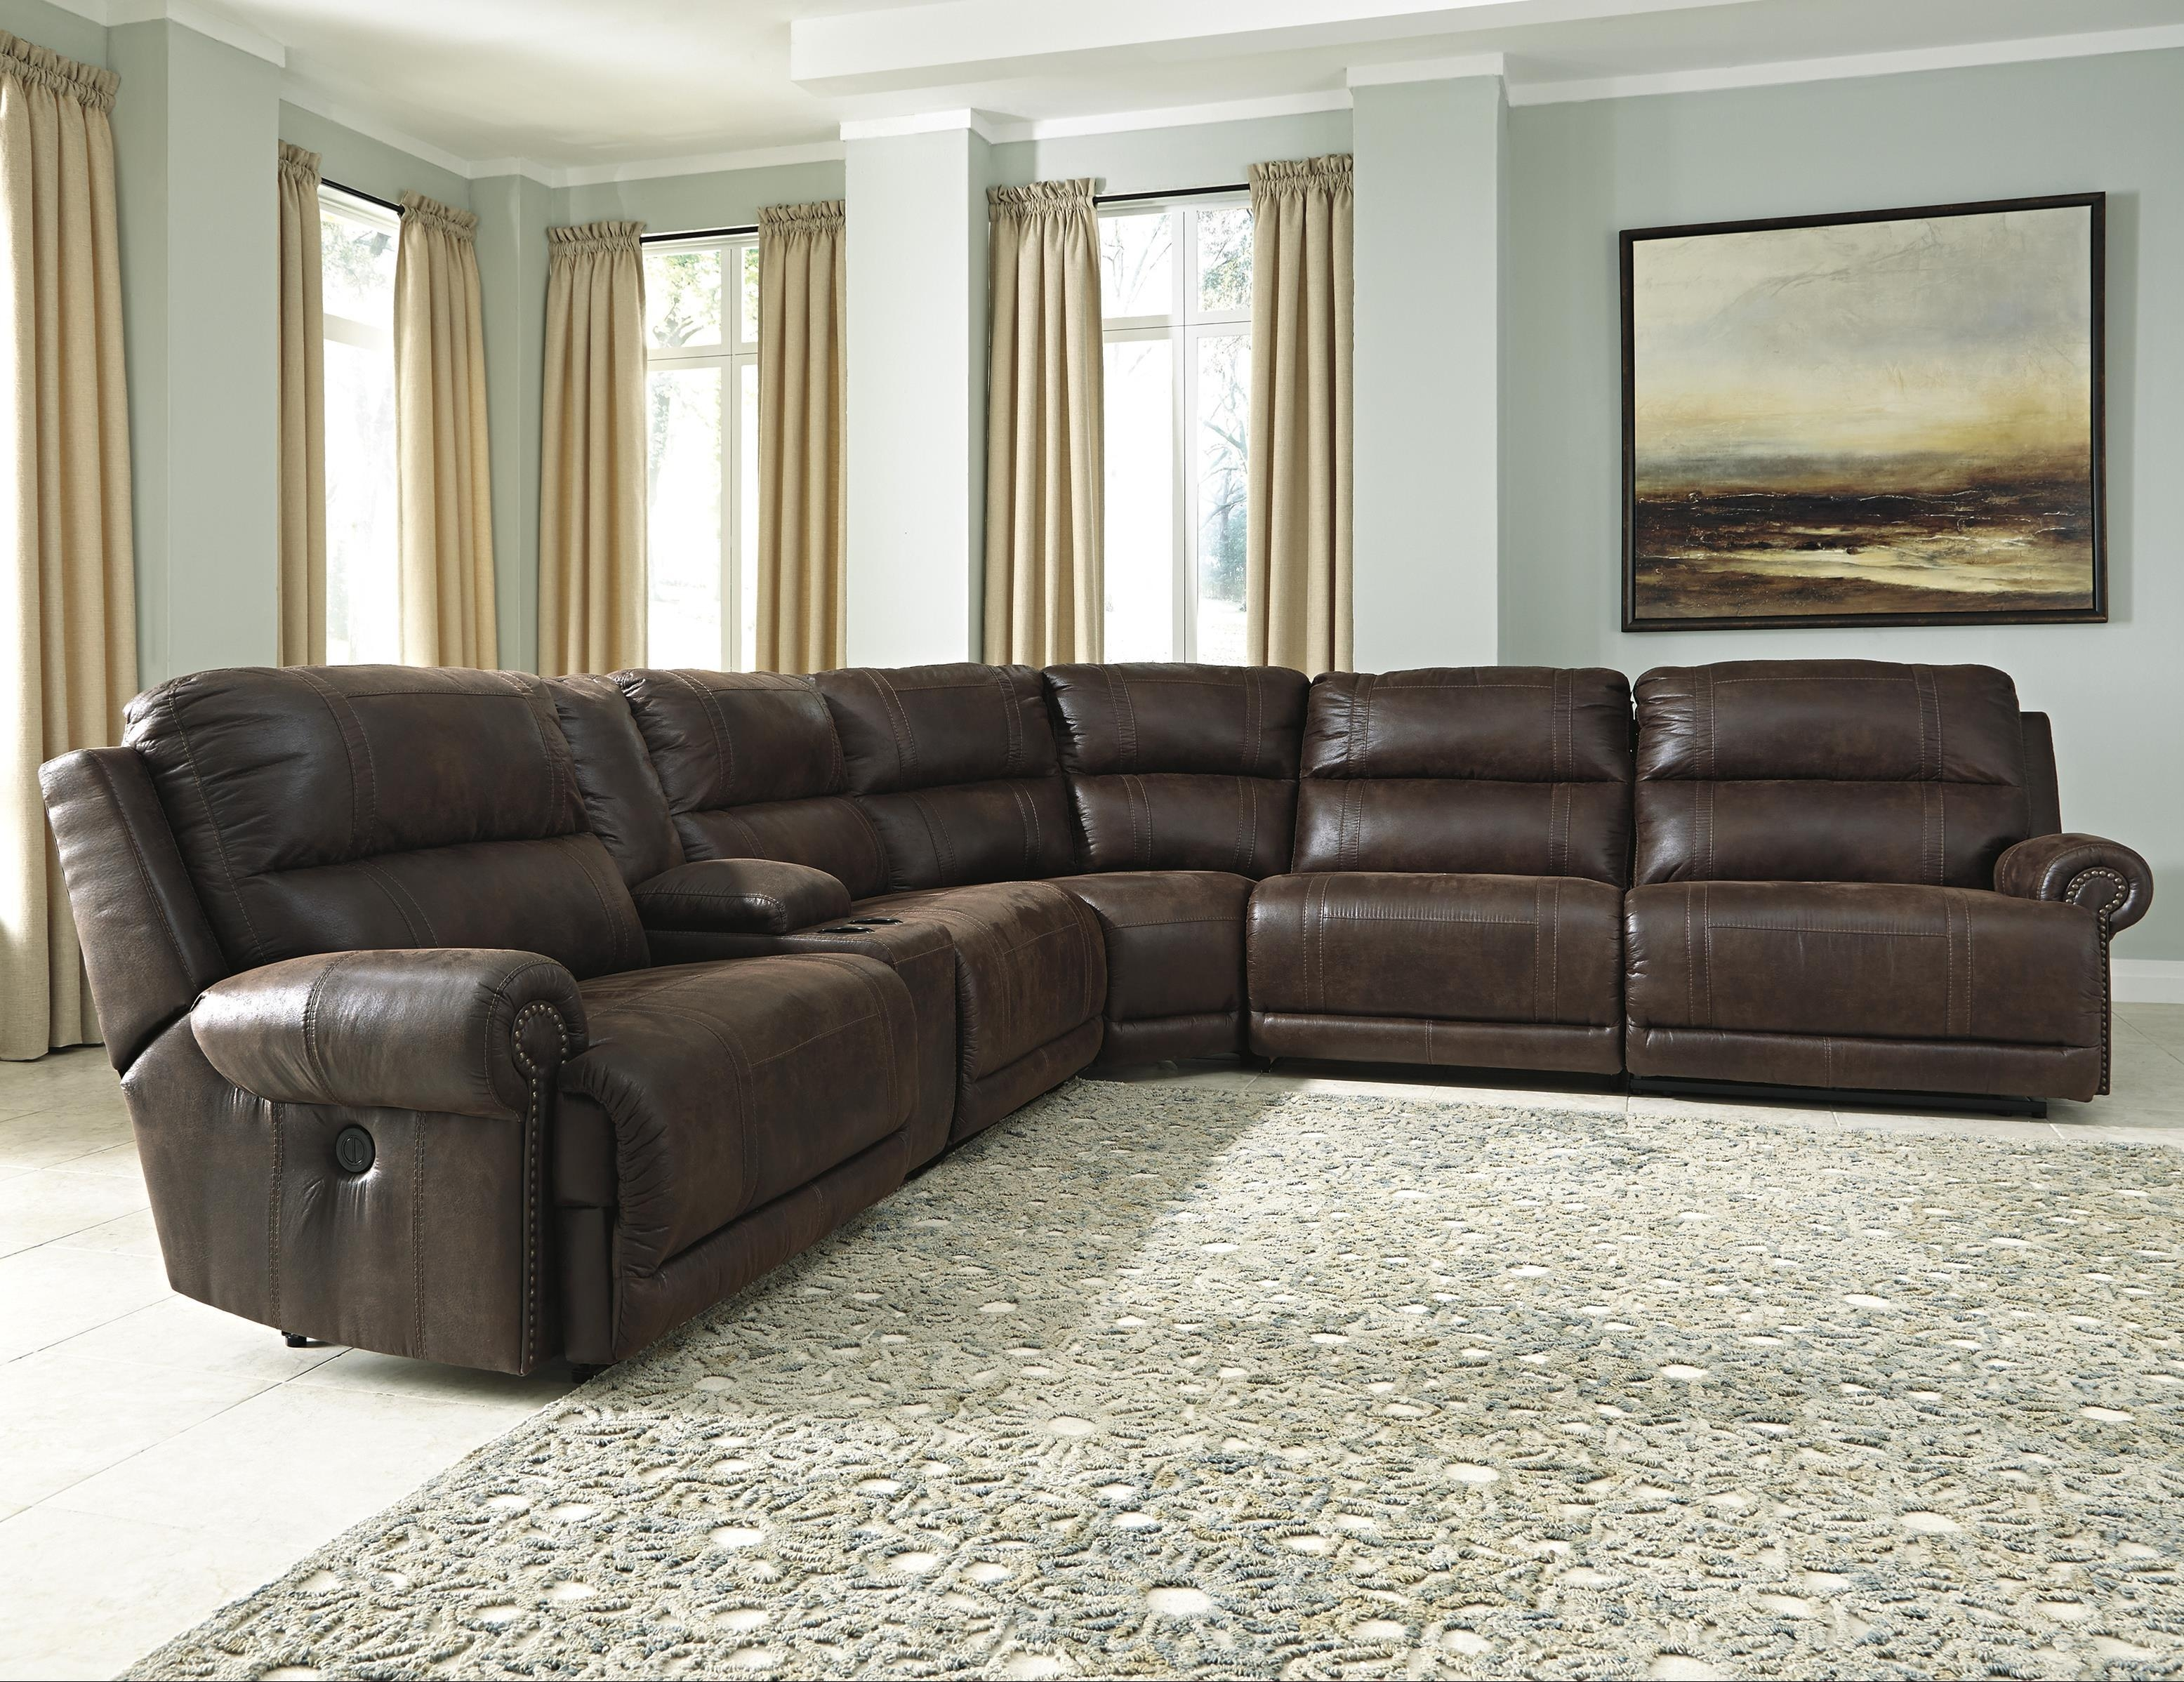 Signature Designashley Luttrell 6 Piece Reclining Sectional Inside 6 Piece Sectional Sofas Couches (View 8 of 20)